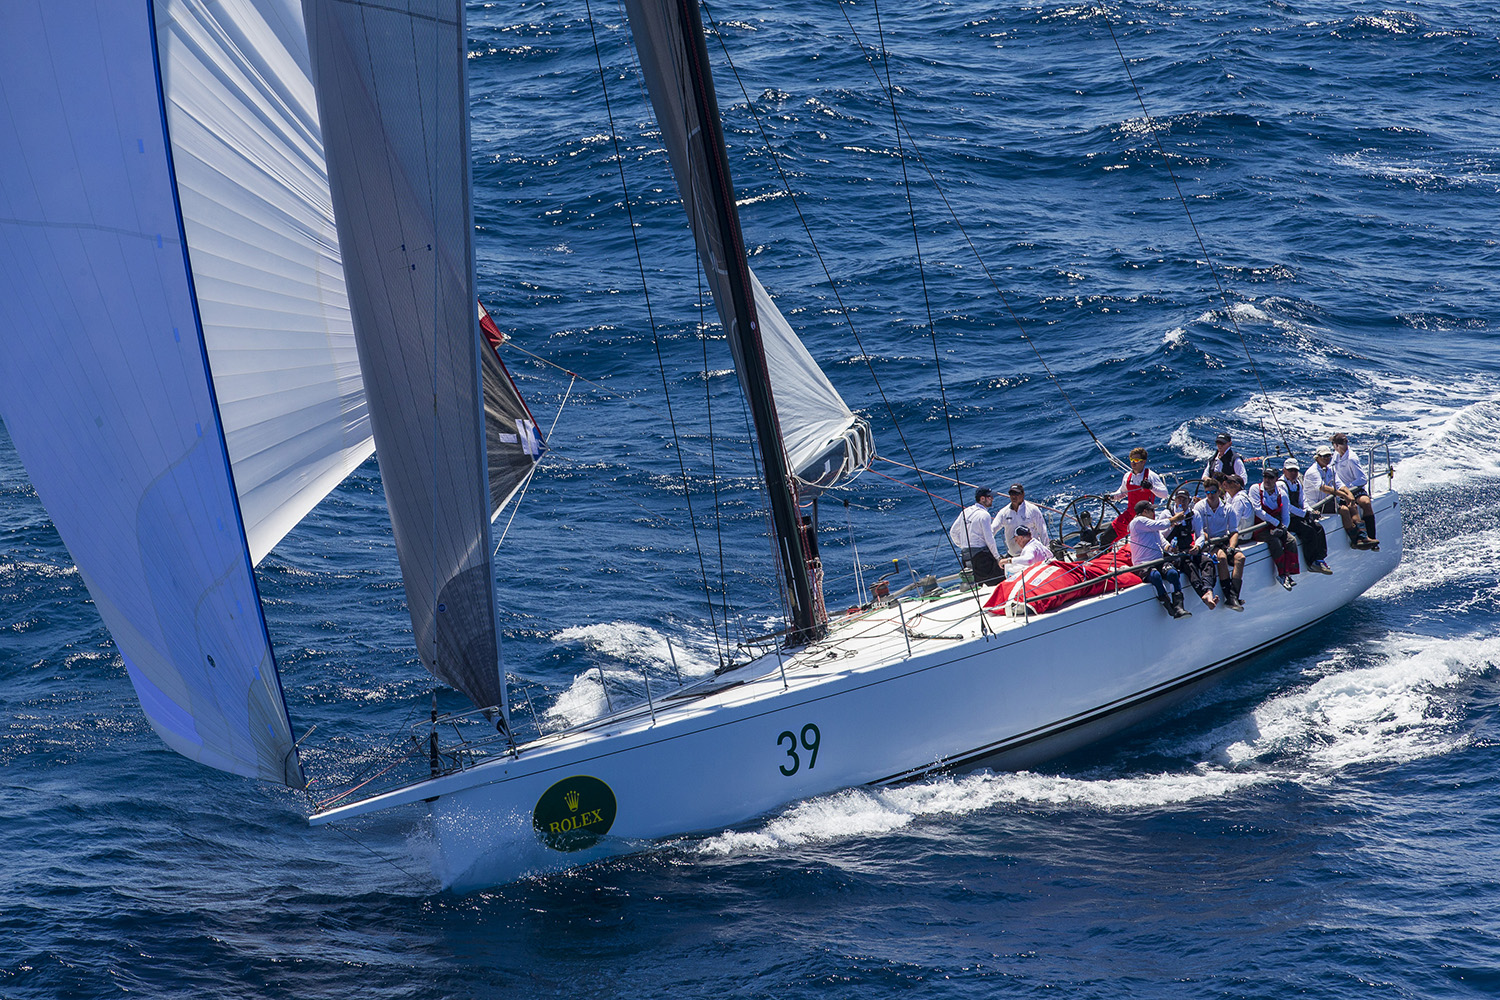 Triton during the Rolex Sydney Hobart Yacht Race. Photo Andrea Francolini.